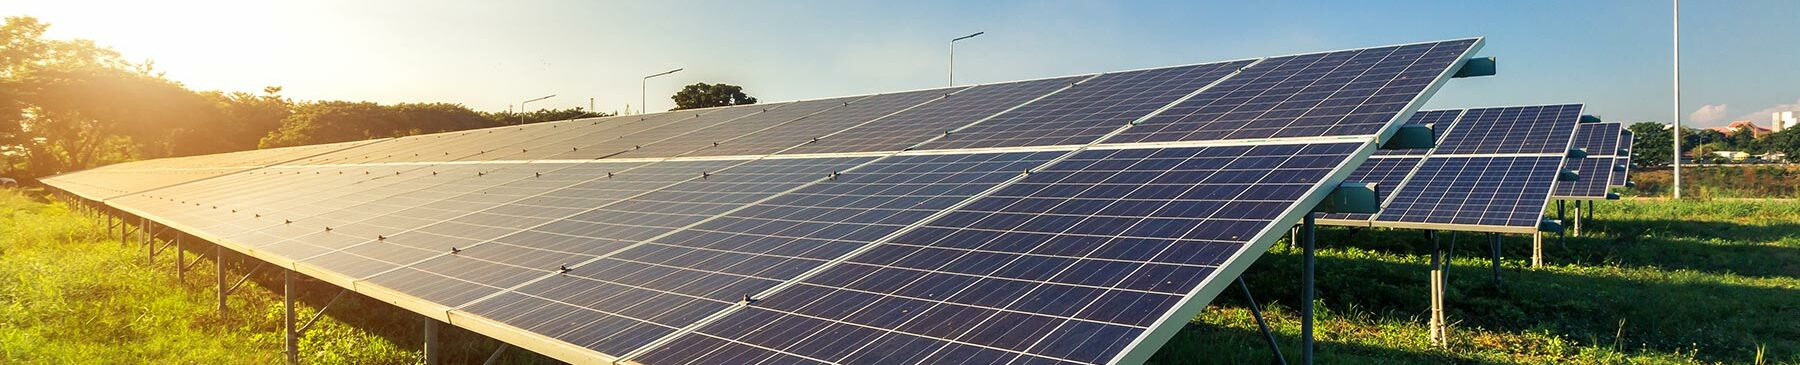 solar pv project funding sustainable energy